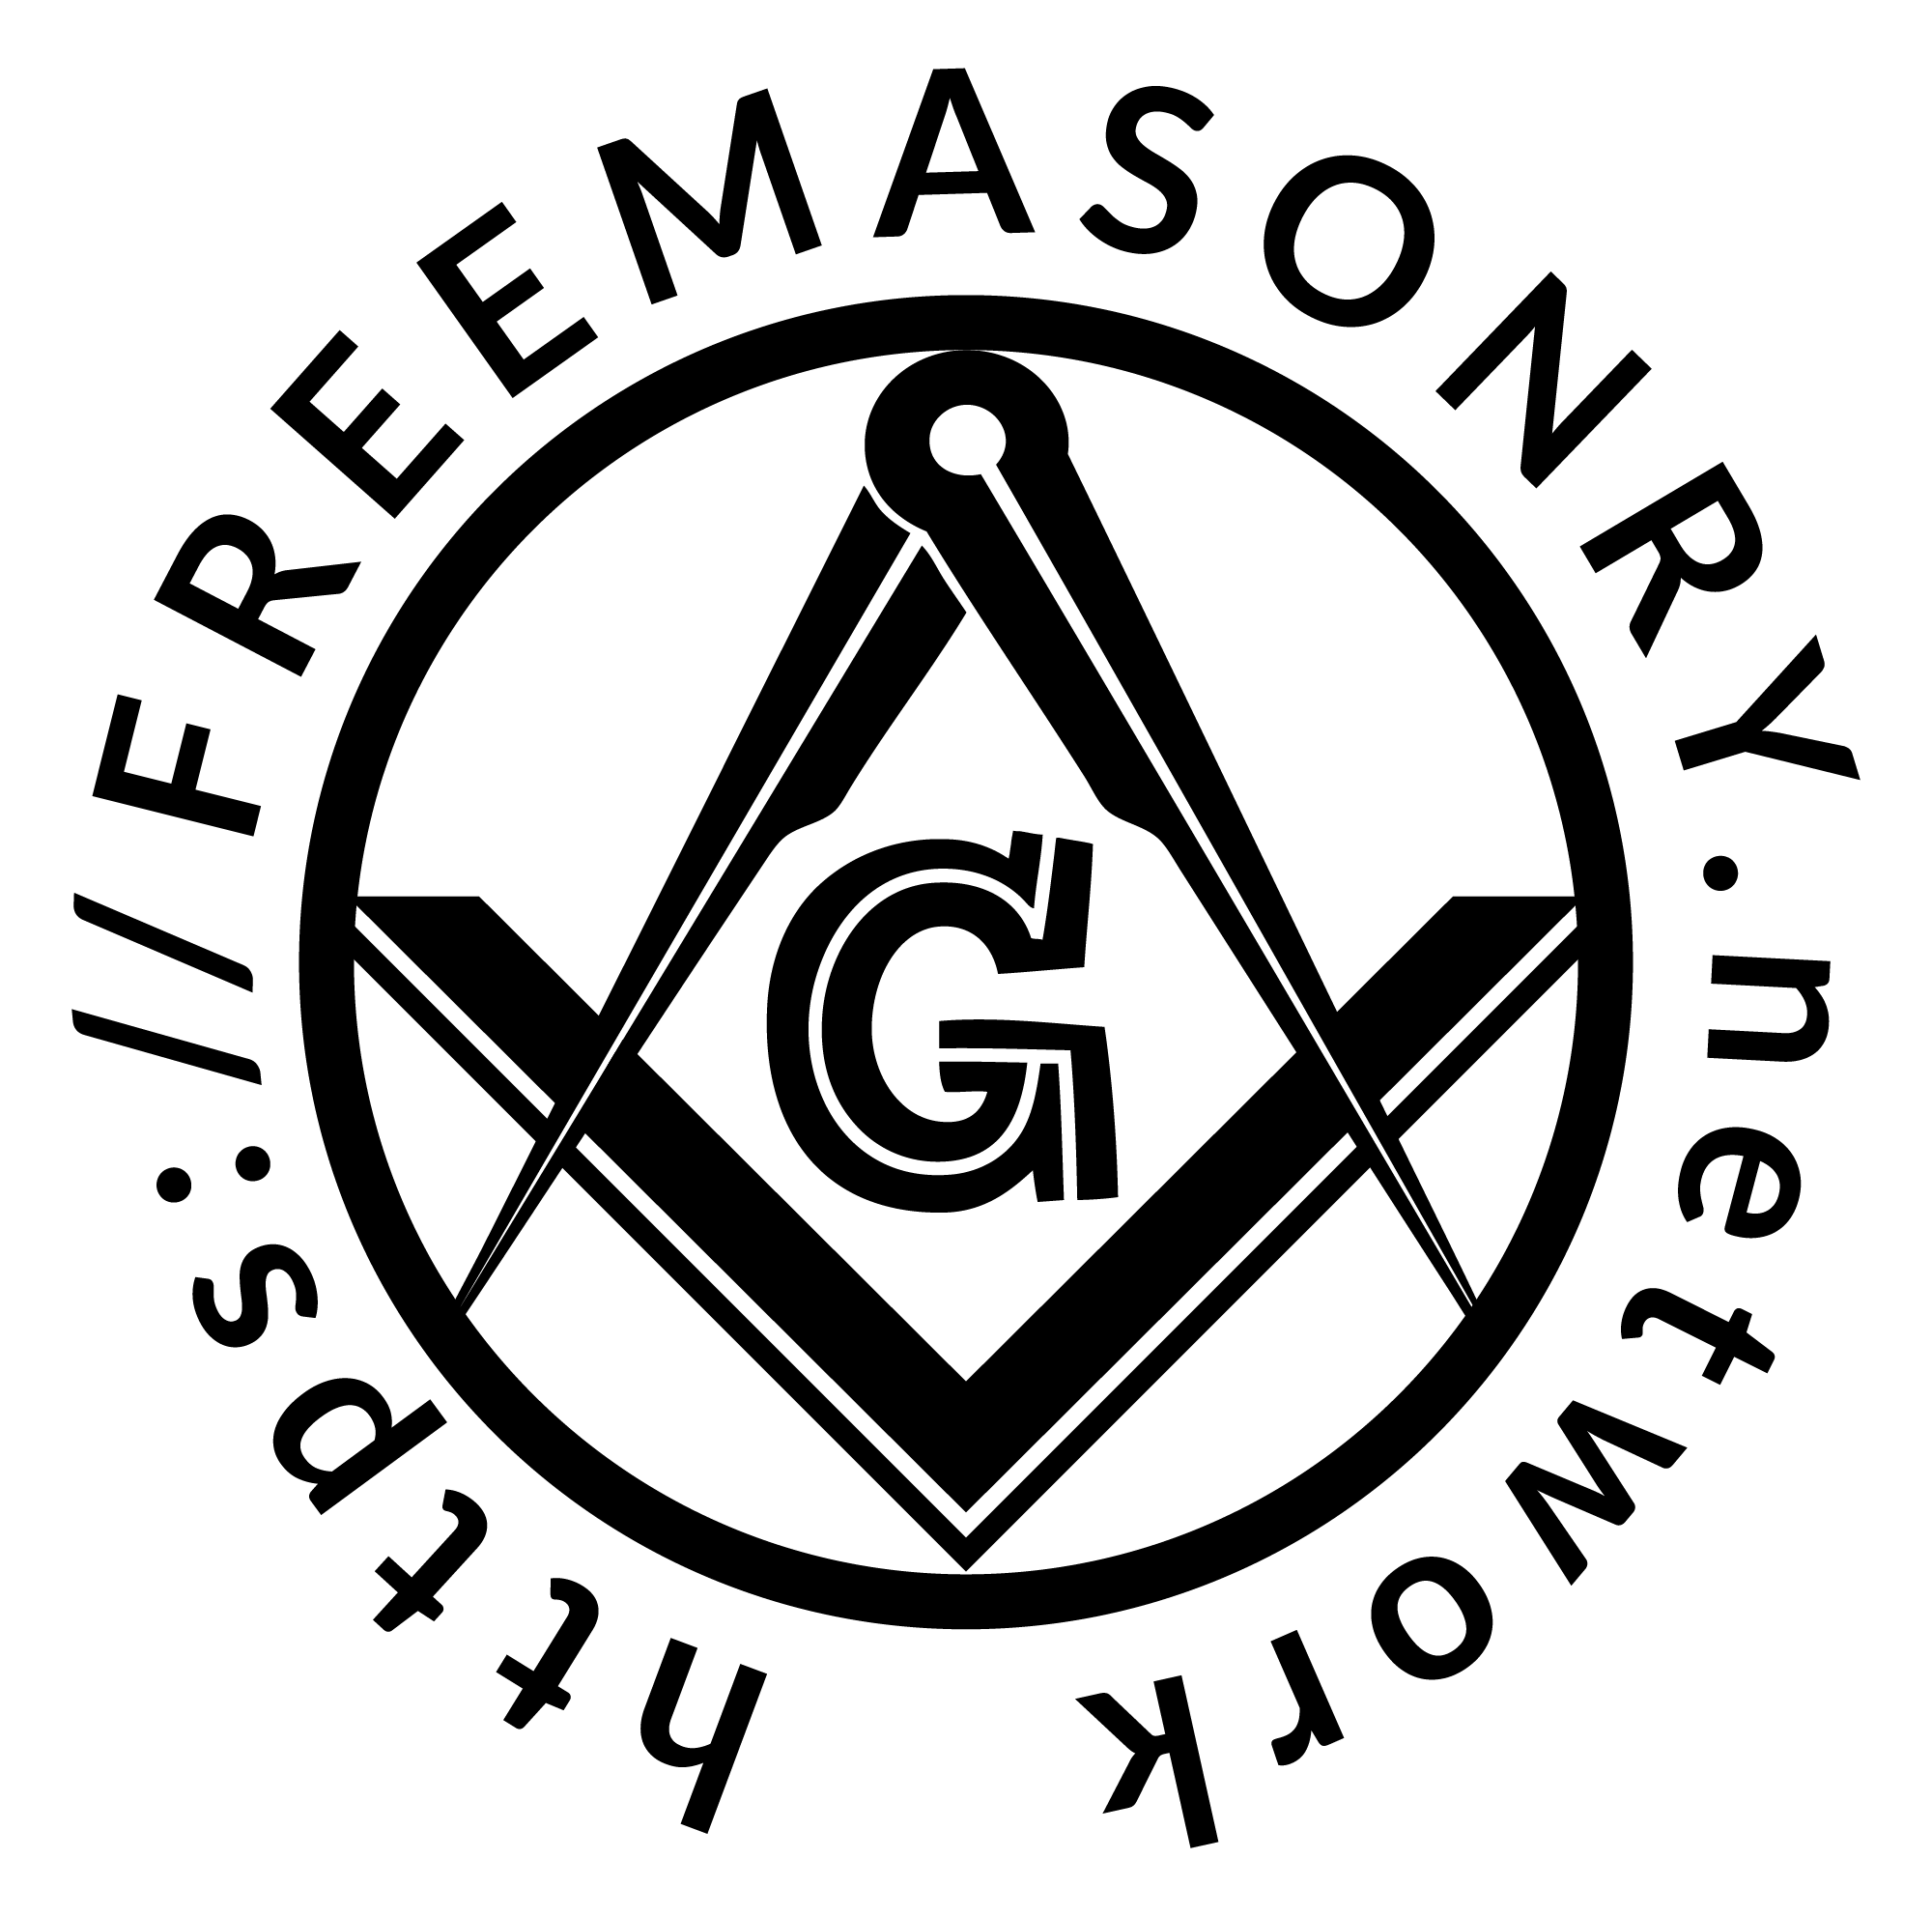 FAMOUS COMPOSERS - FREEMASONS